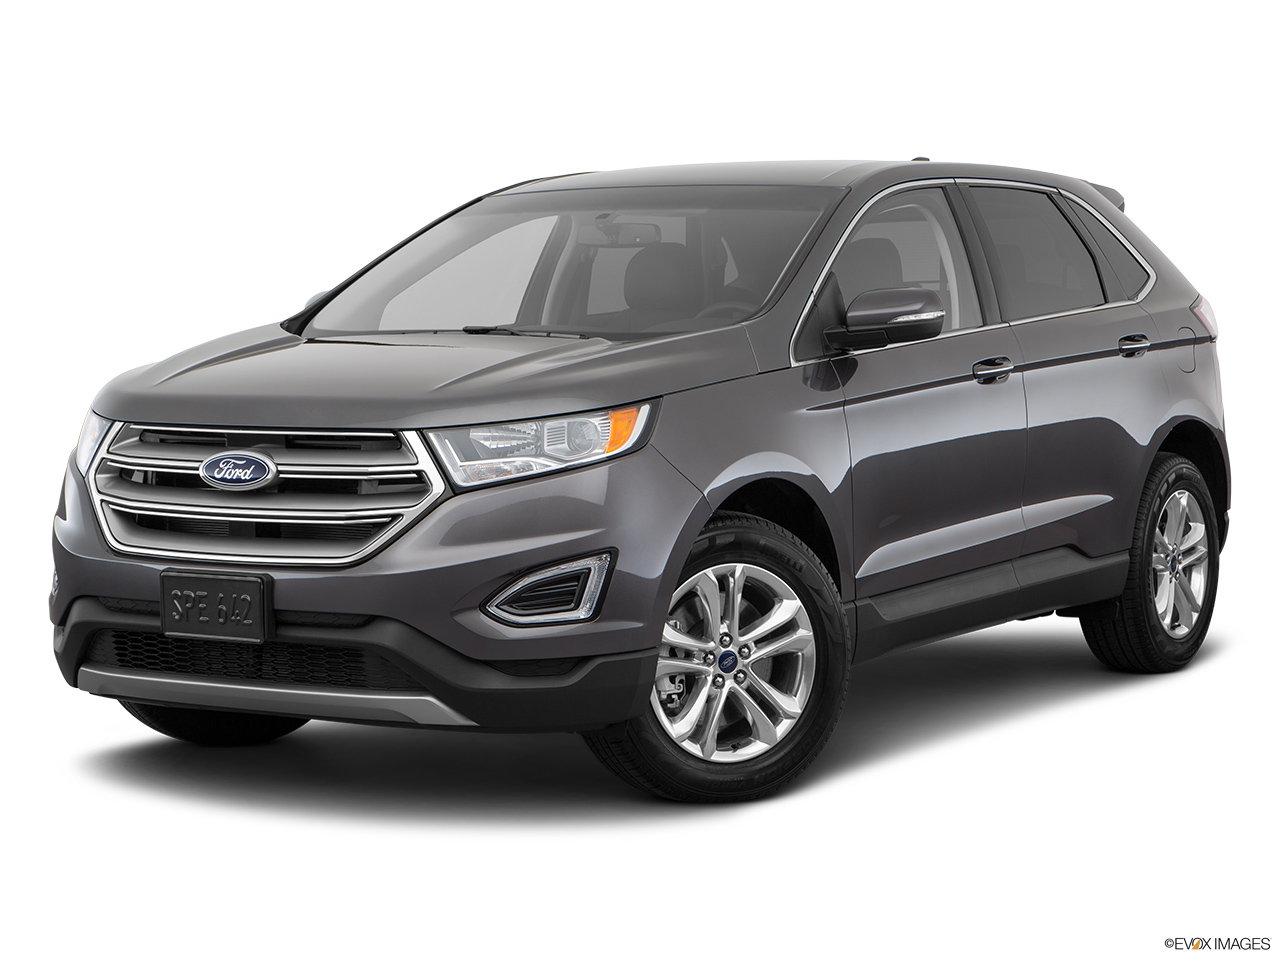 car pictures list for ford edge 2017 3 5l v6 titanium awd. Black Bedroom Furniture Sets. Home Design Ideas